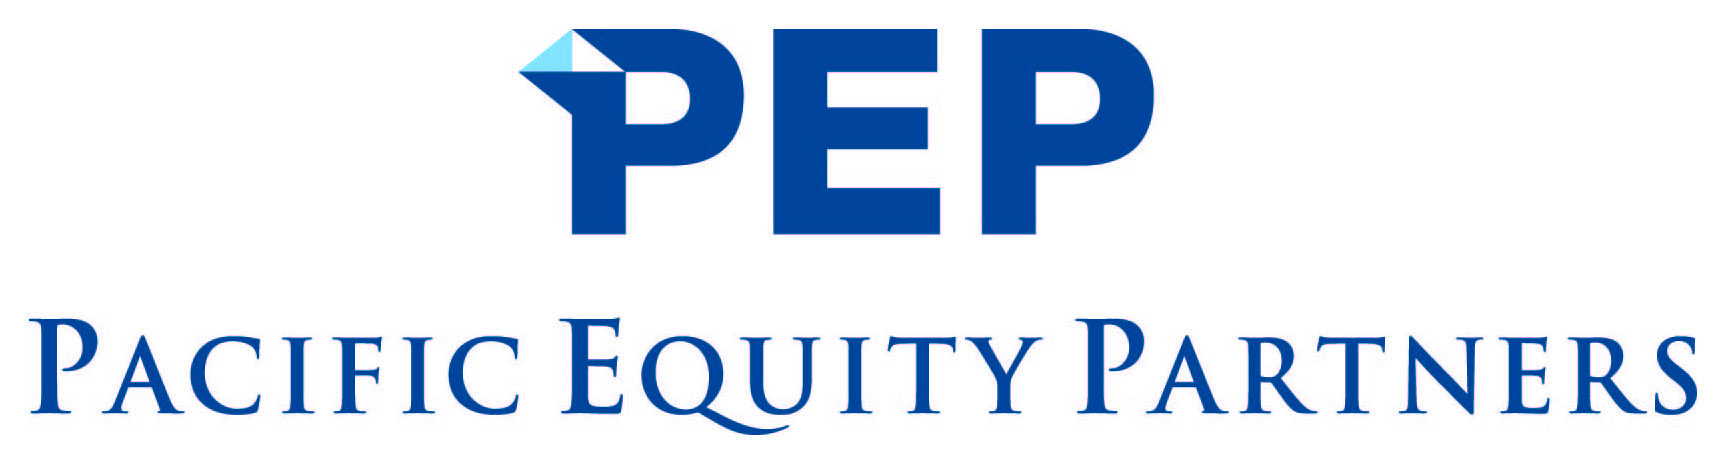 Pacific Equity Partners